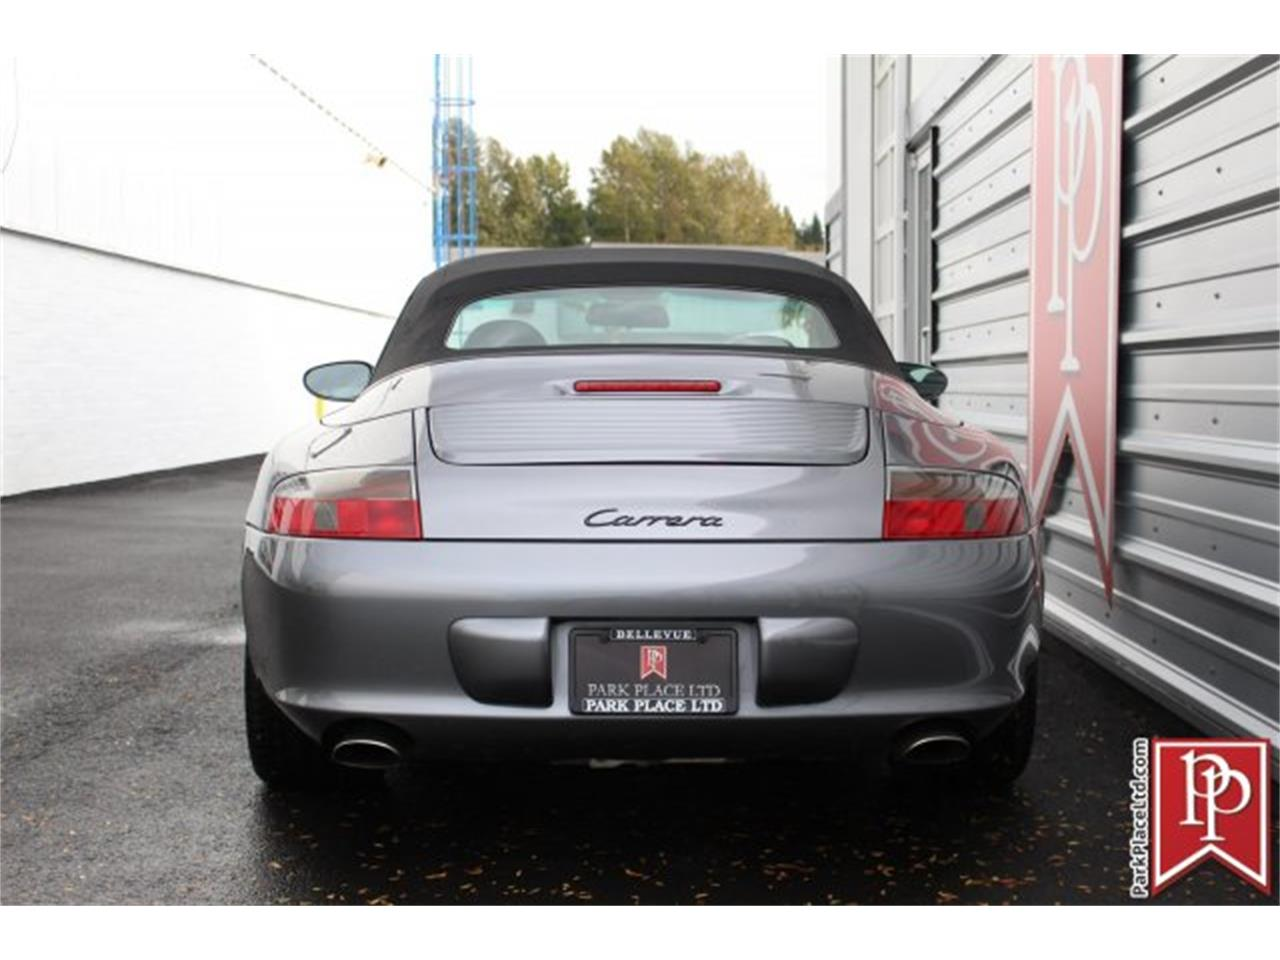 Large Picture of 2002 911 located in Bellevue Washington - $29,950.00 Offered by Park Place Ltd - M5J1